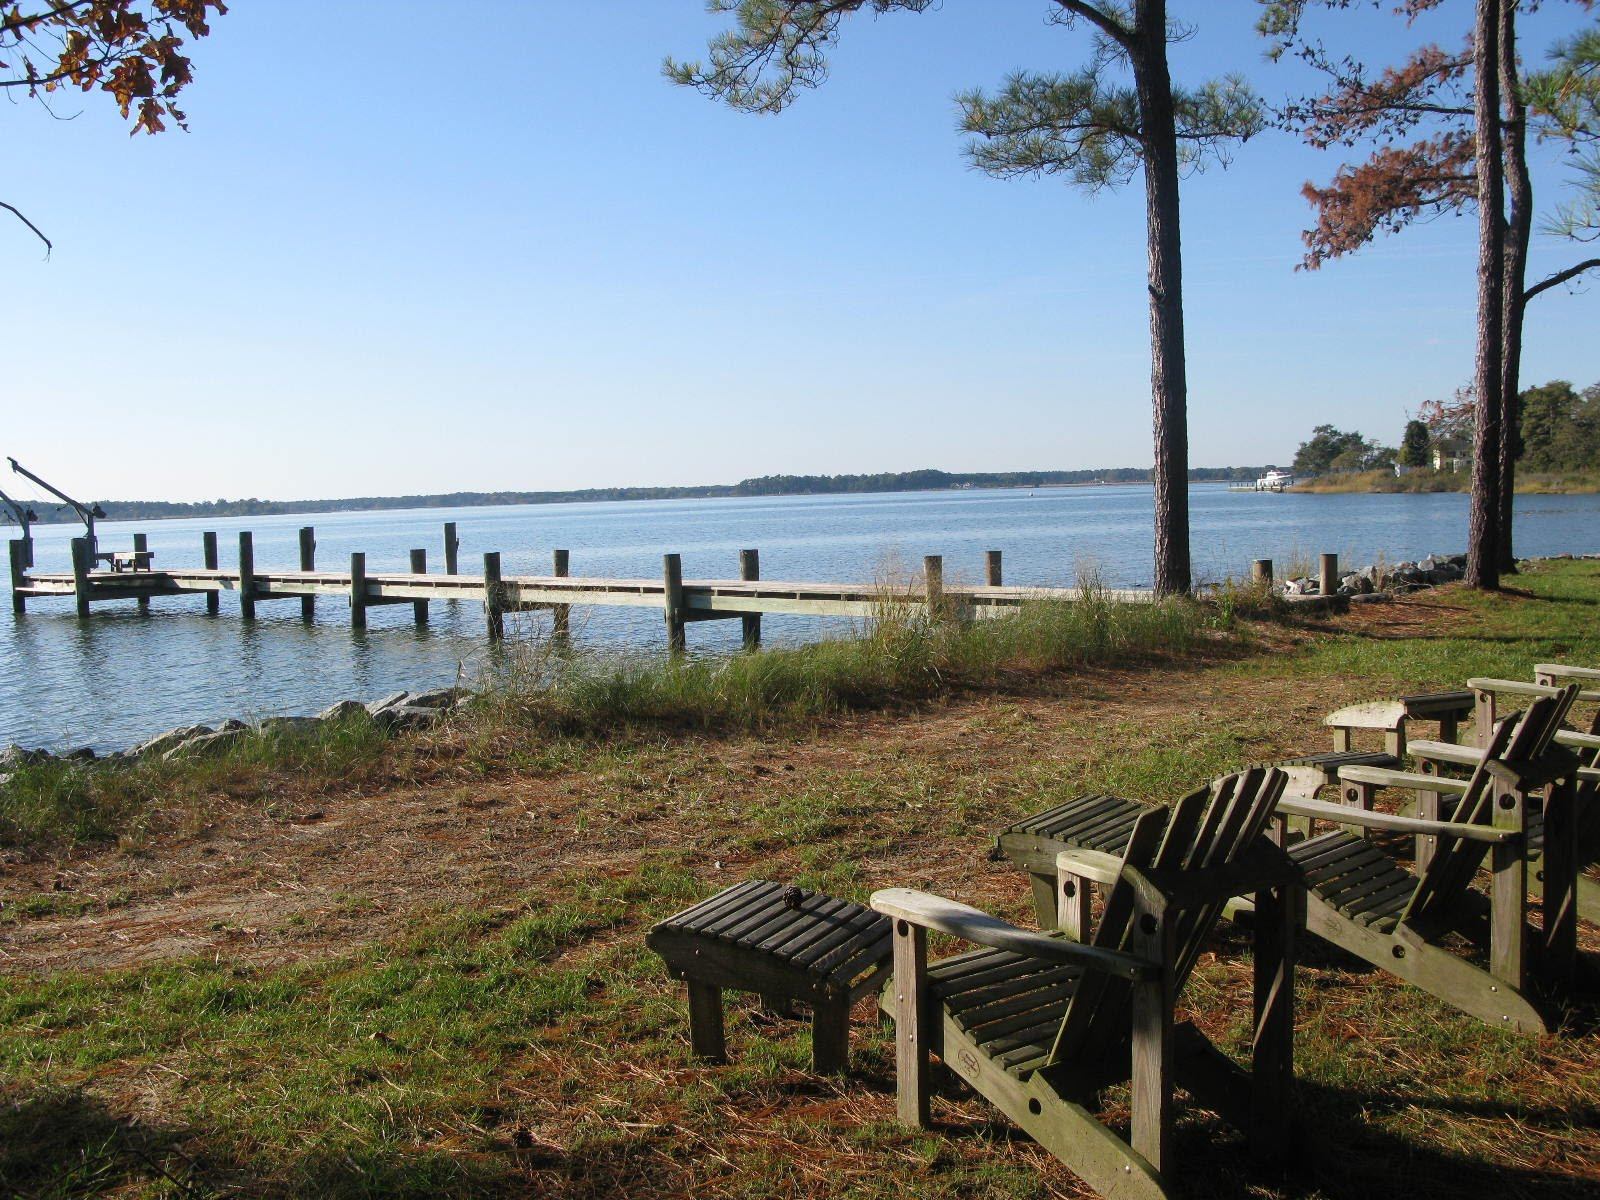 The Sandy Pines dock is a great place to fish.